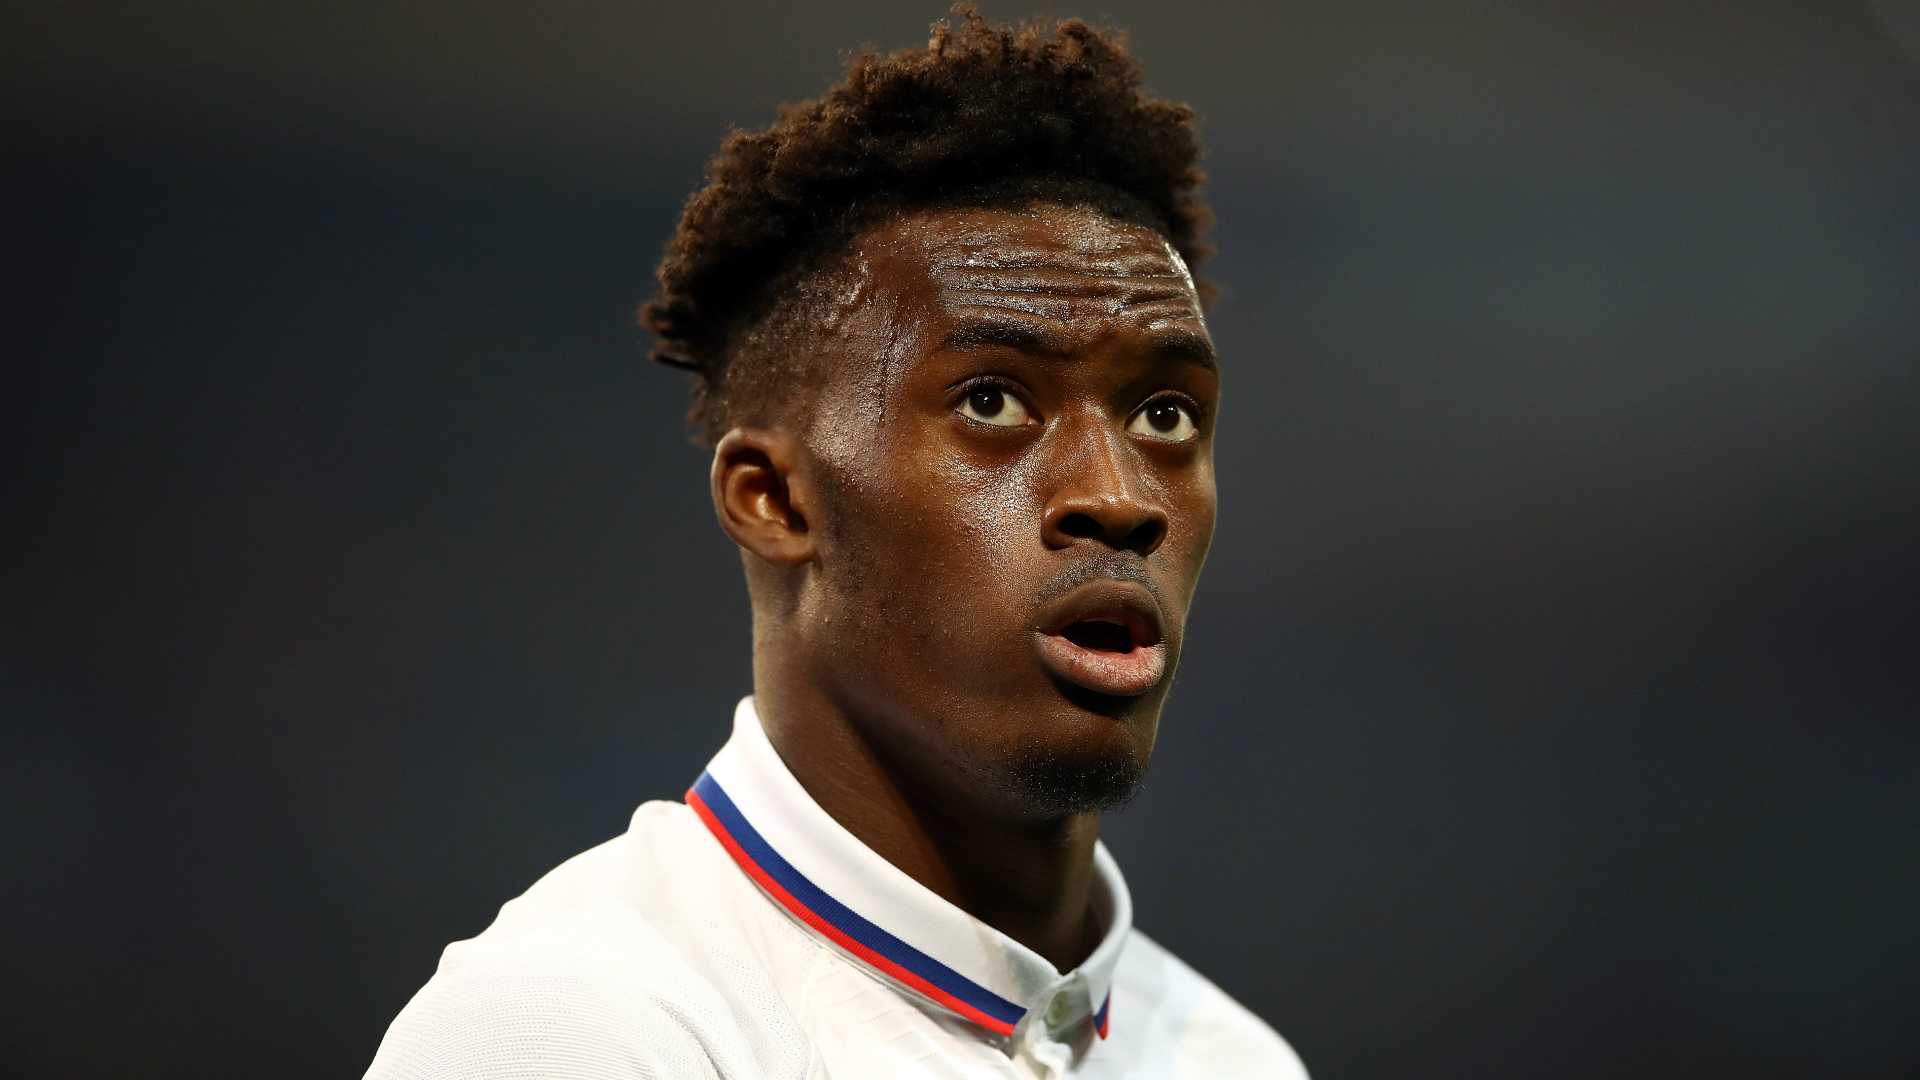 Chelsea winger Hudson-Odoi feeling 'perfect' after Covid-19 recovery